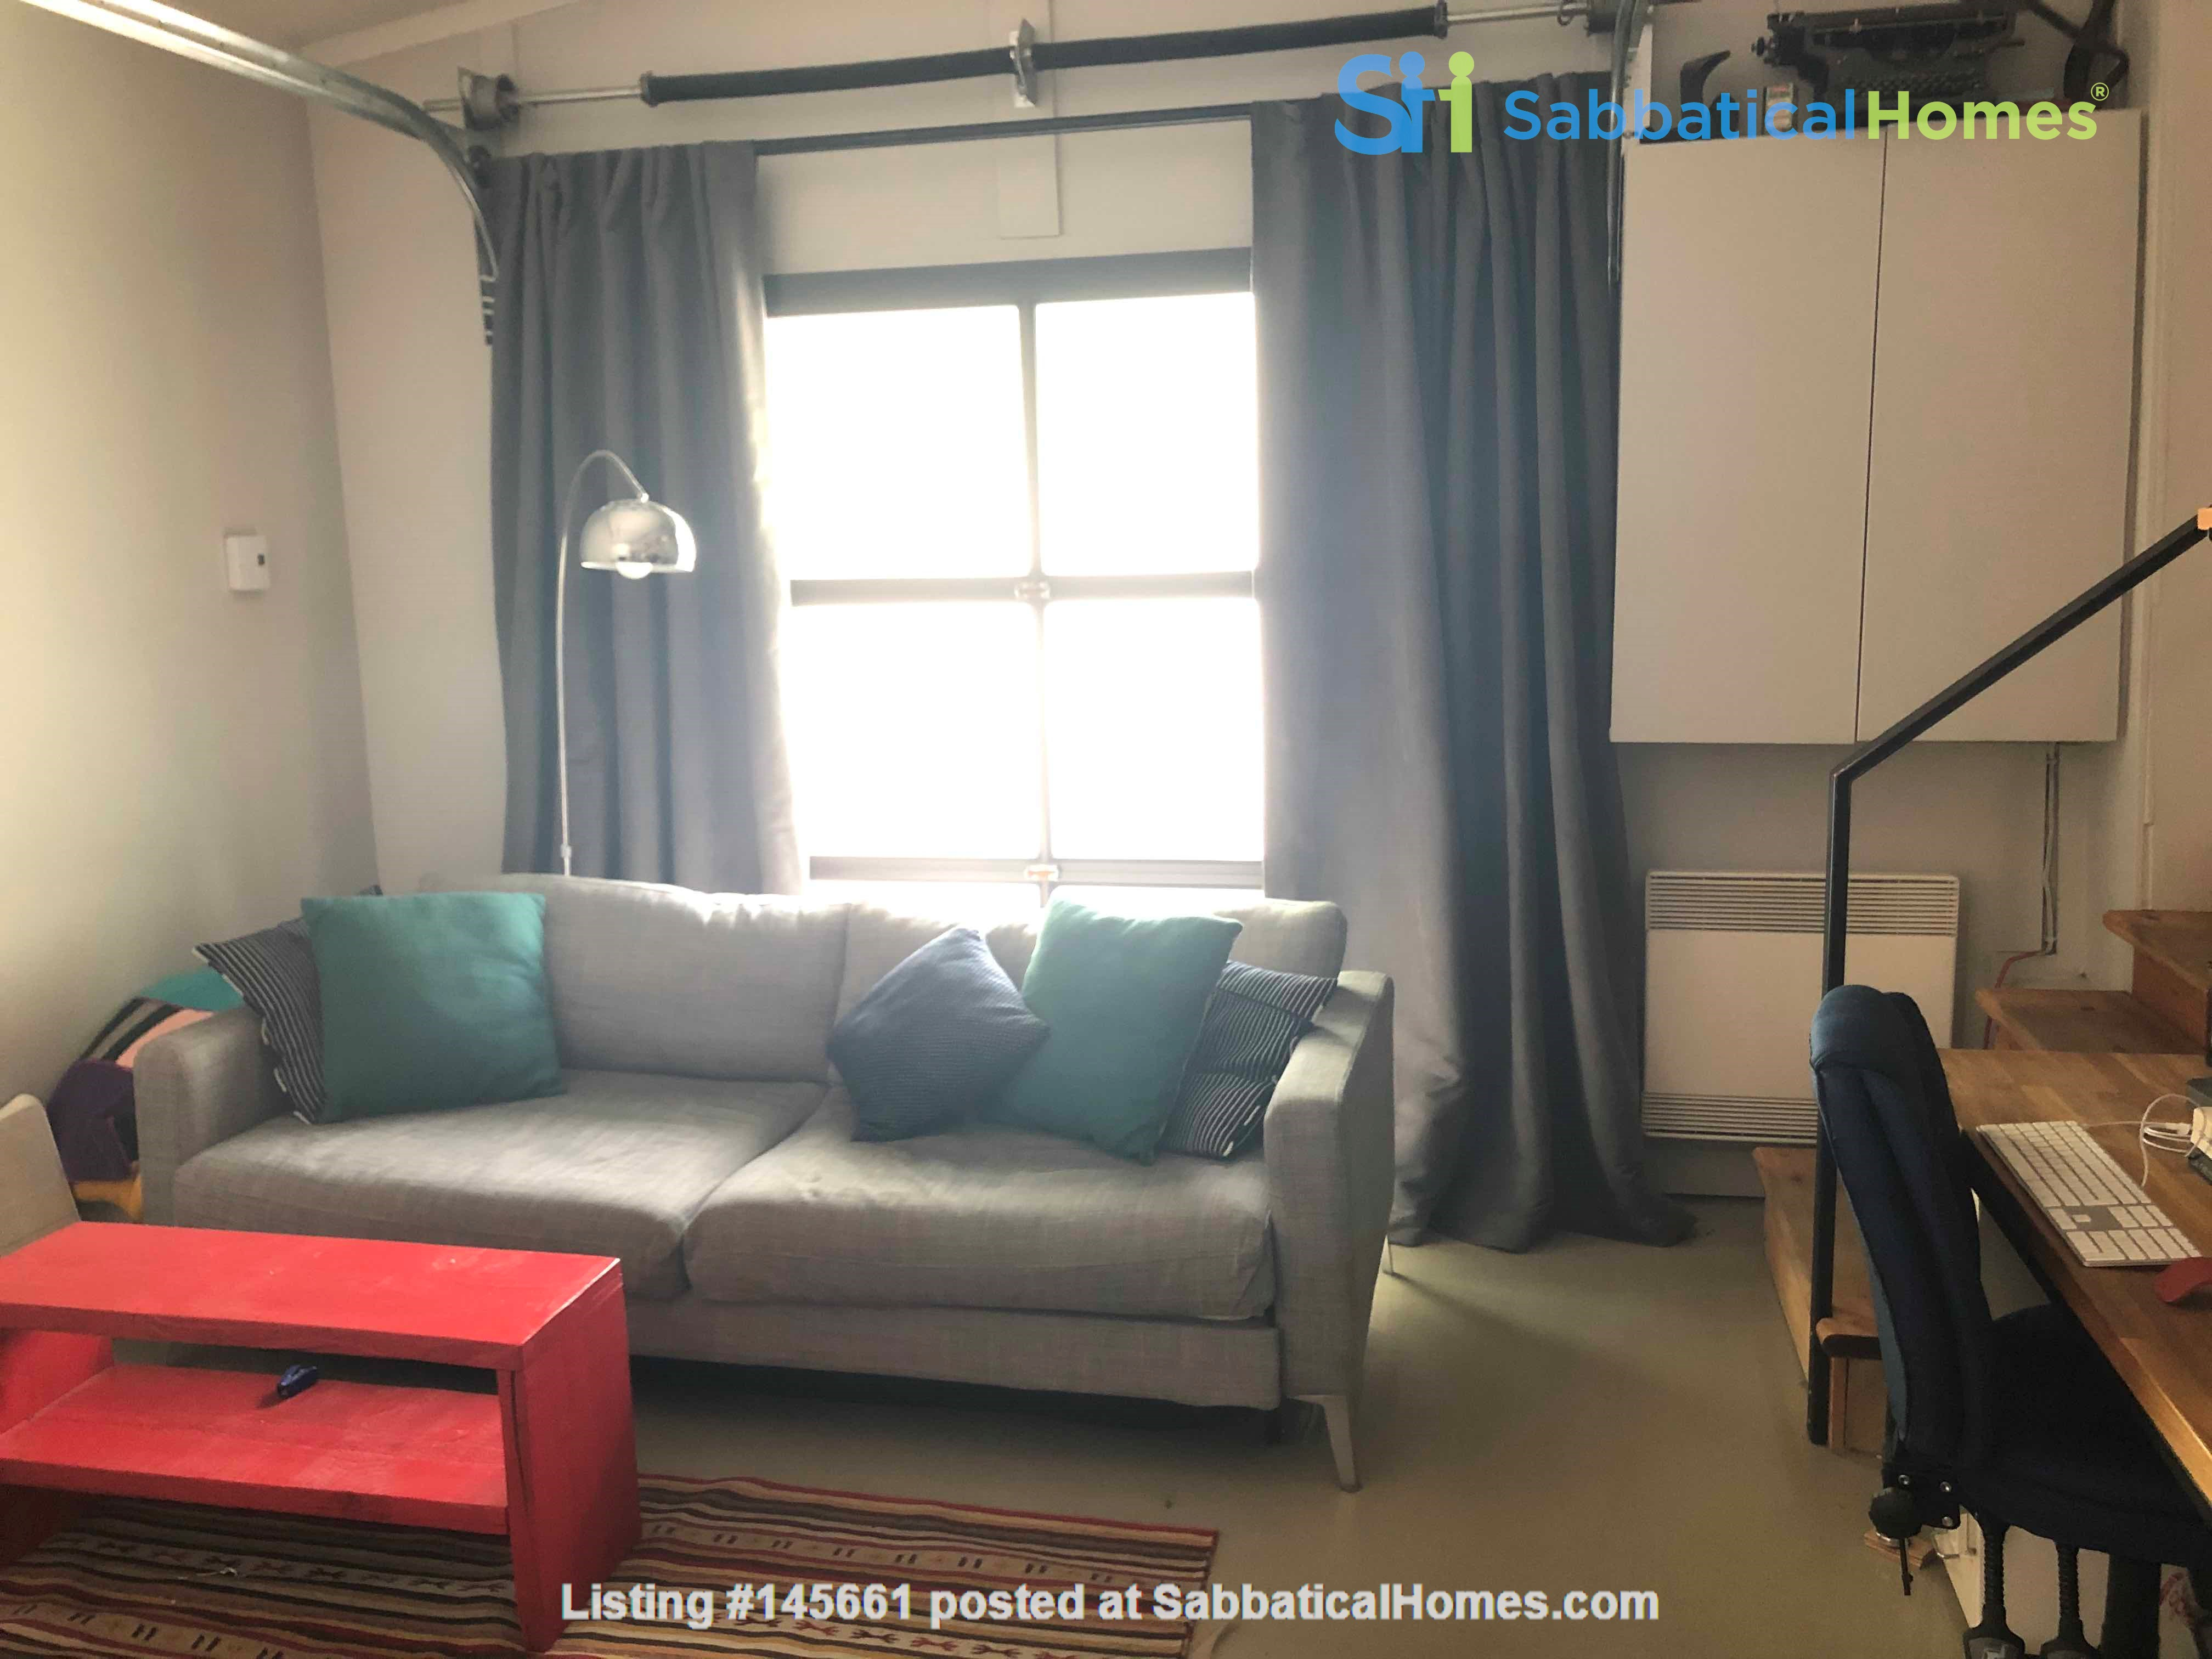 Beautiful fully furnished 2 BR in Vieux-Rosemont Home Rental in Montréal, Québec, Canada 6